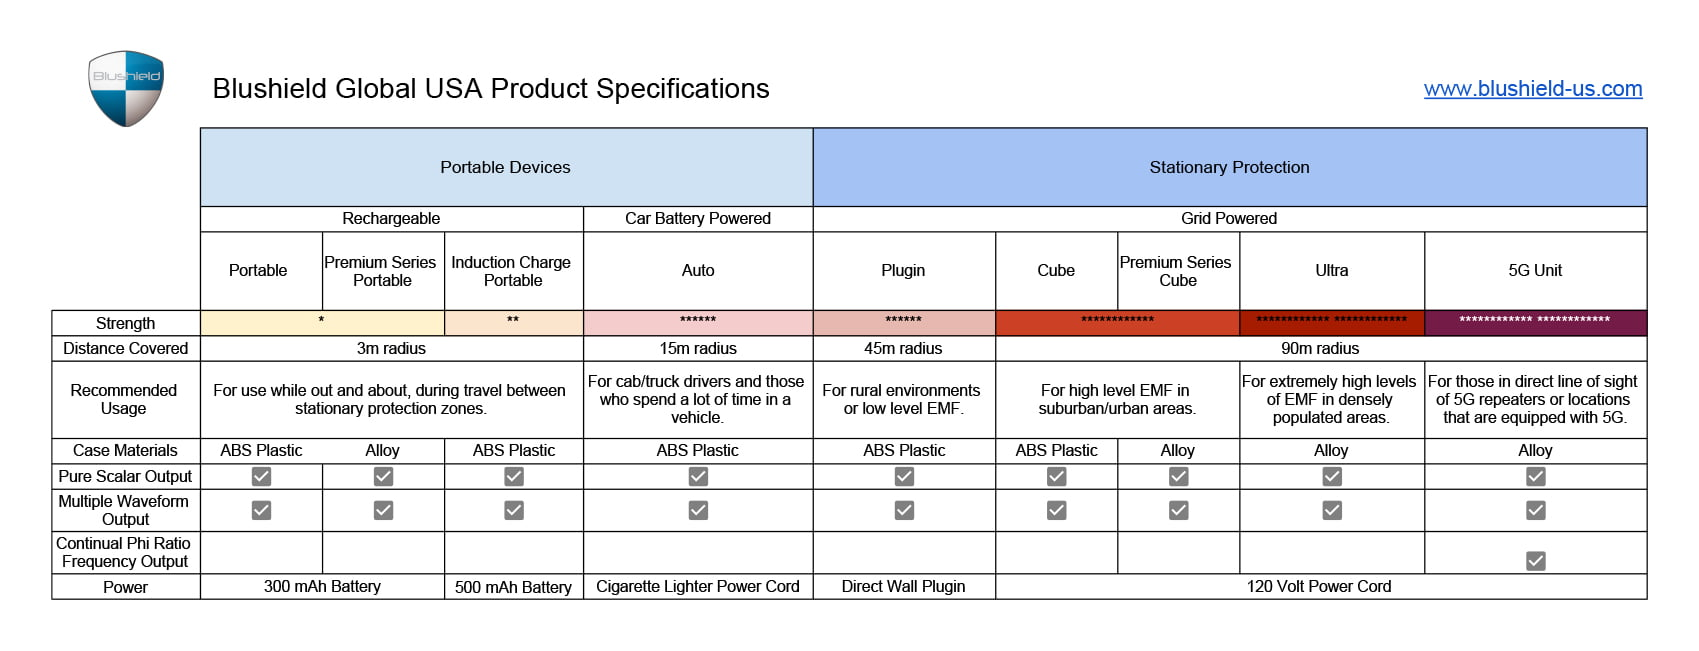 Spreadsheet of BluShield product specs